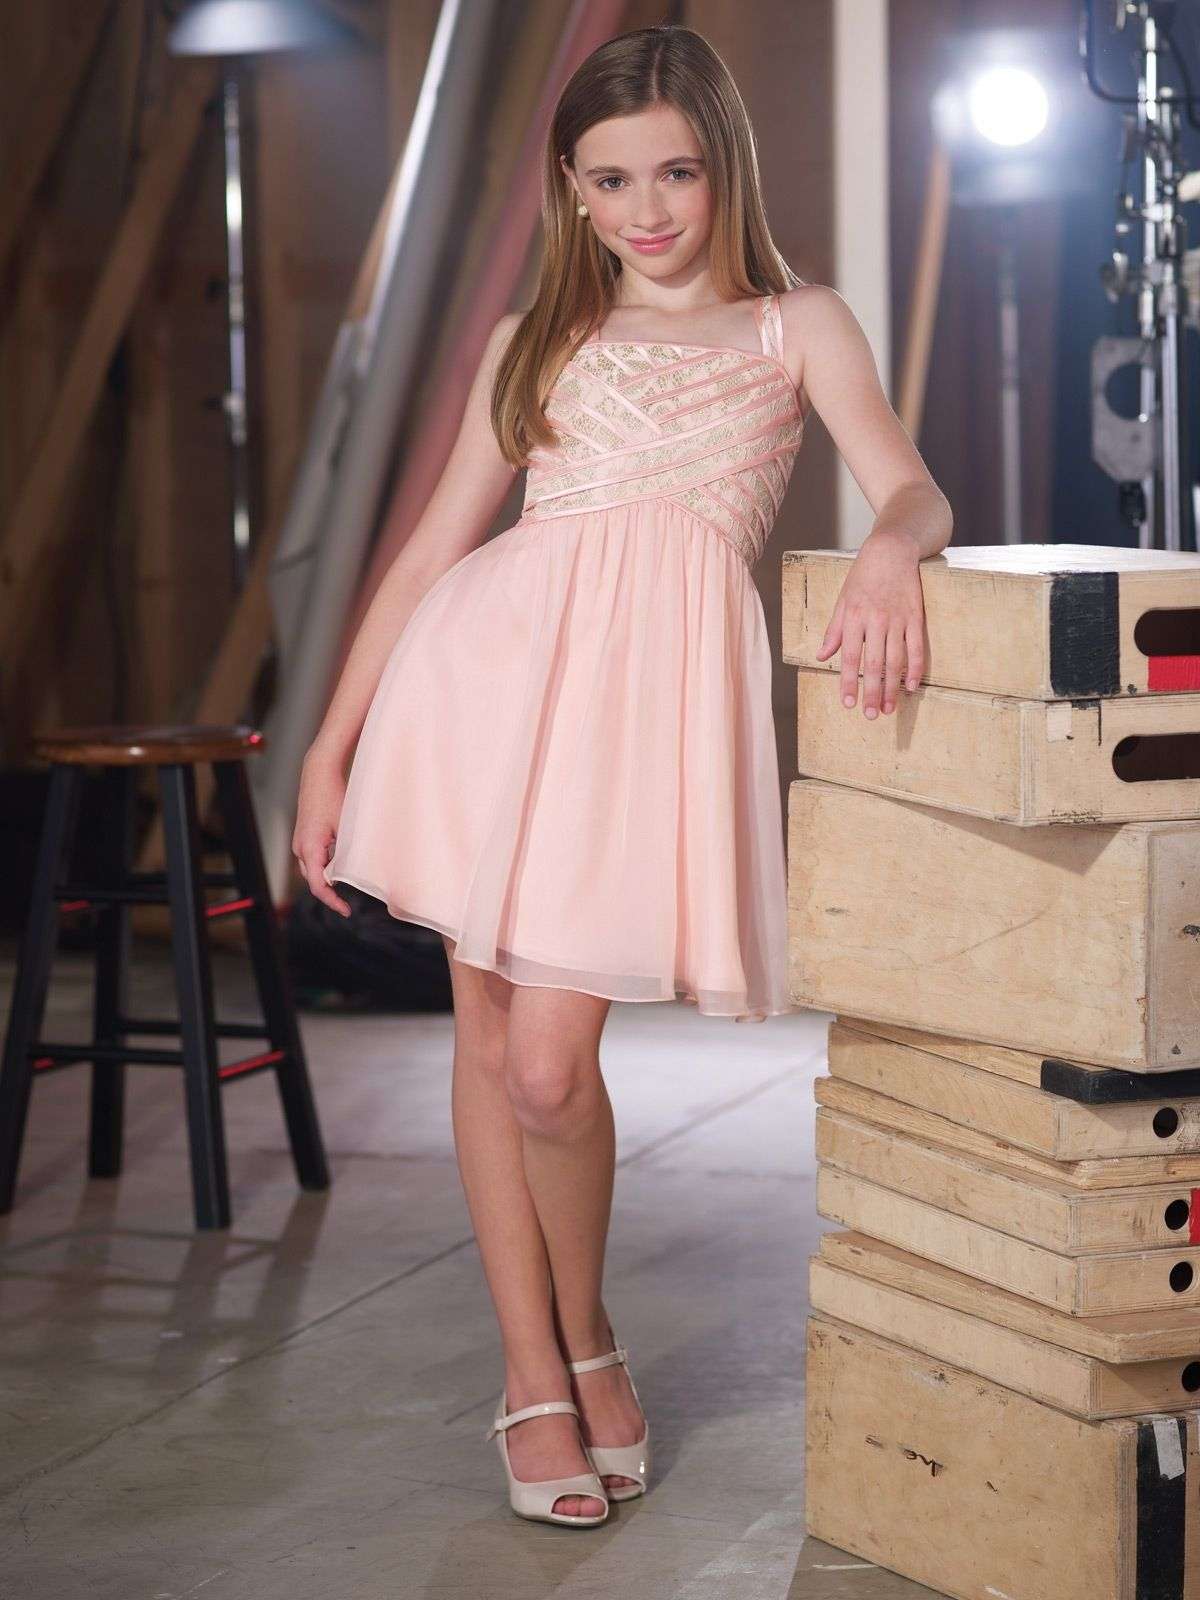 Tolle Partykleid Express Fall River Ma Fotos - Brautkleider Ideen ...